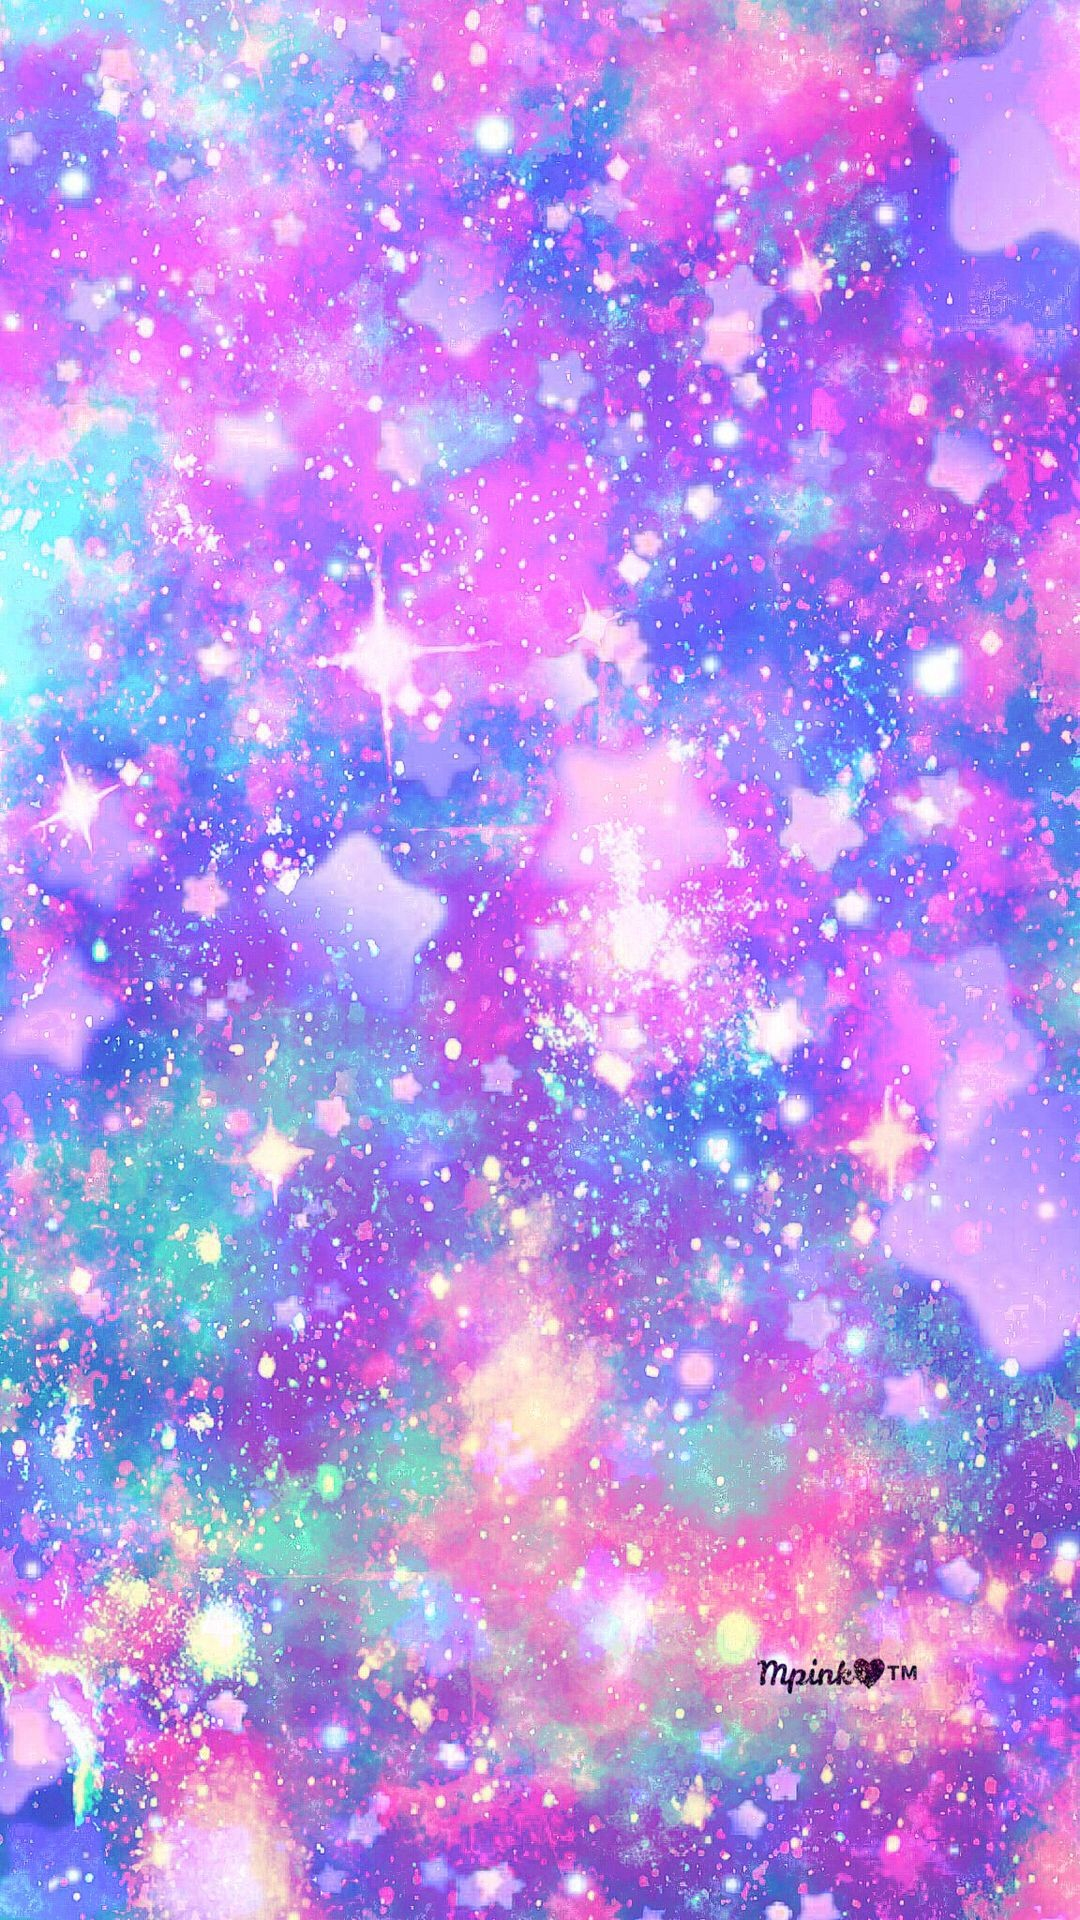 Cute Colorful Backgrounds Blue Purple Pastel Galaxy 736x1308 Wallpaper Teahub Io